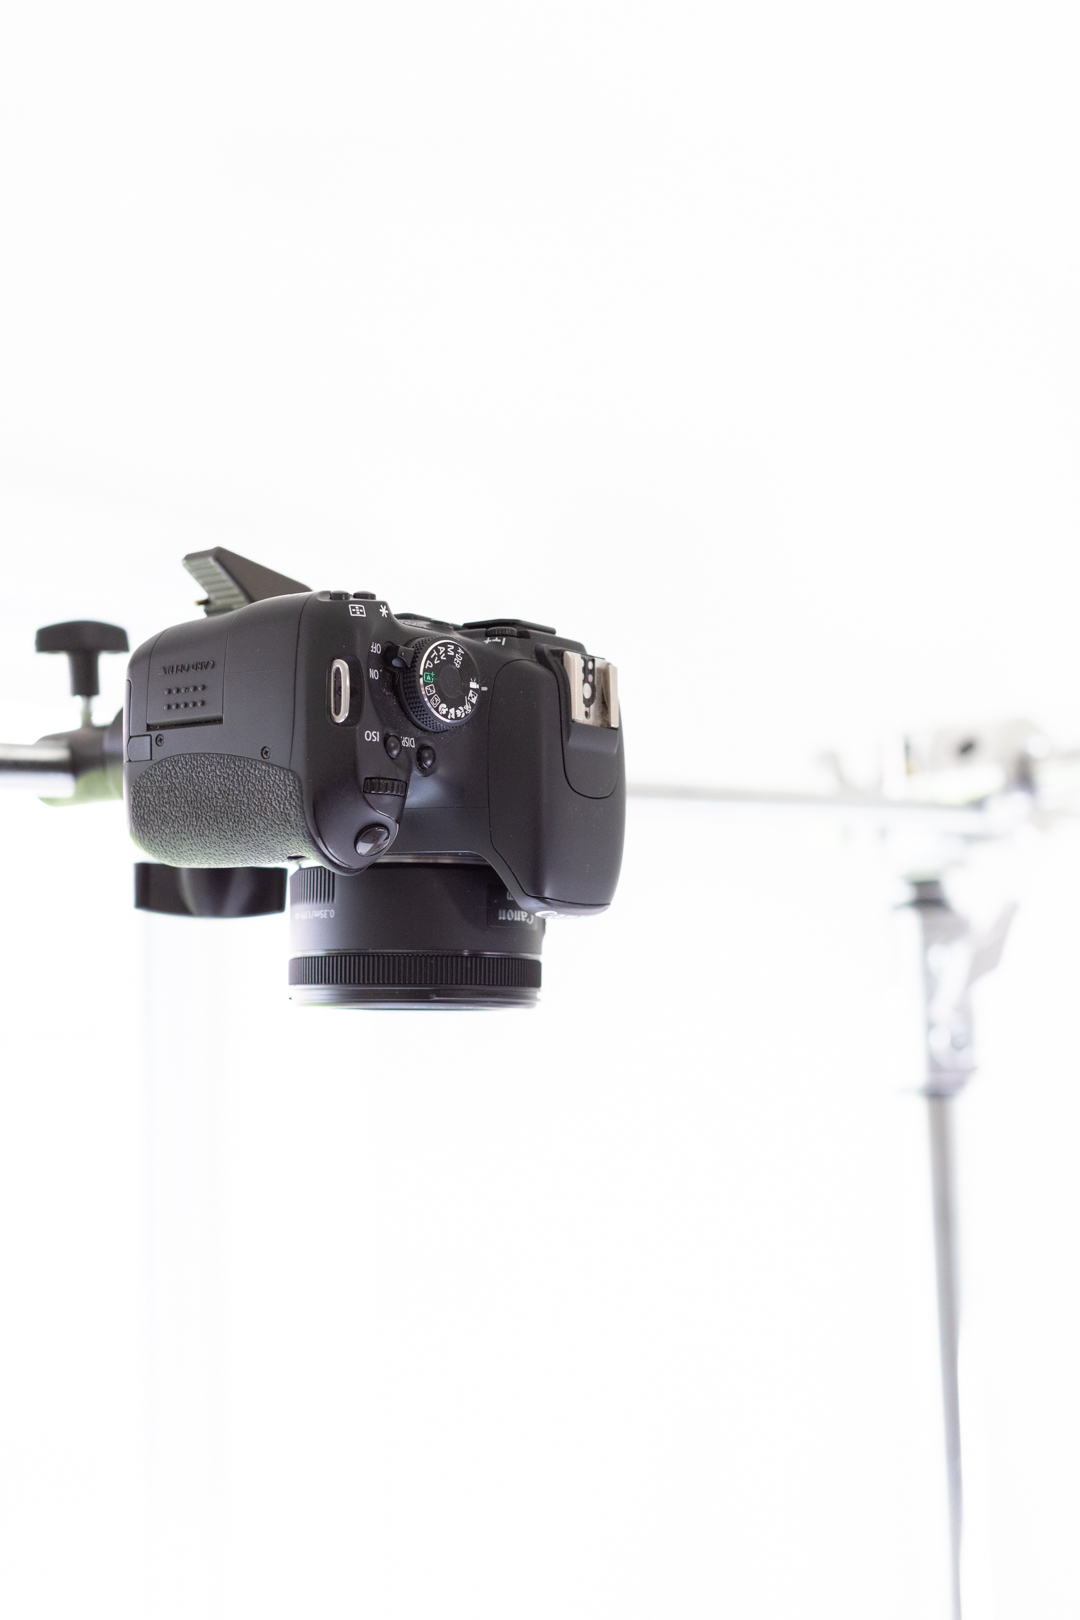 up close of a camera being rigged up with a photography c stand